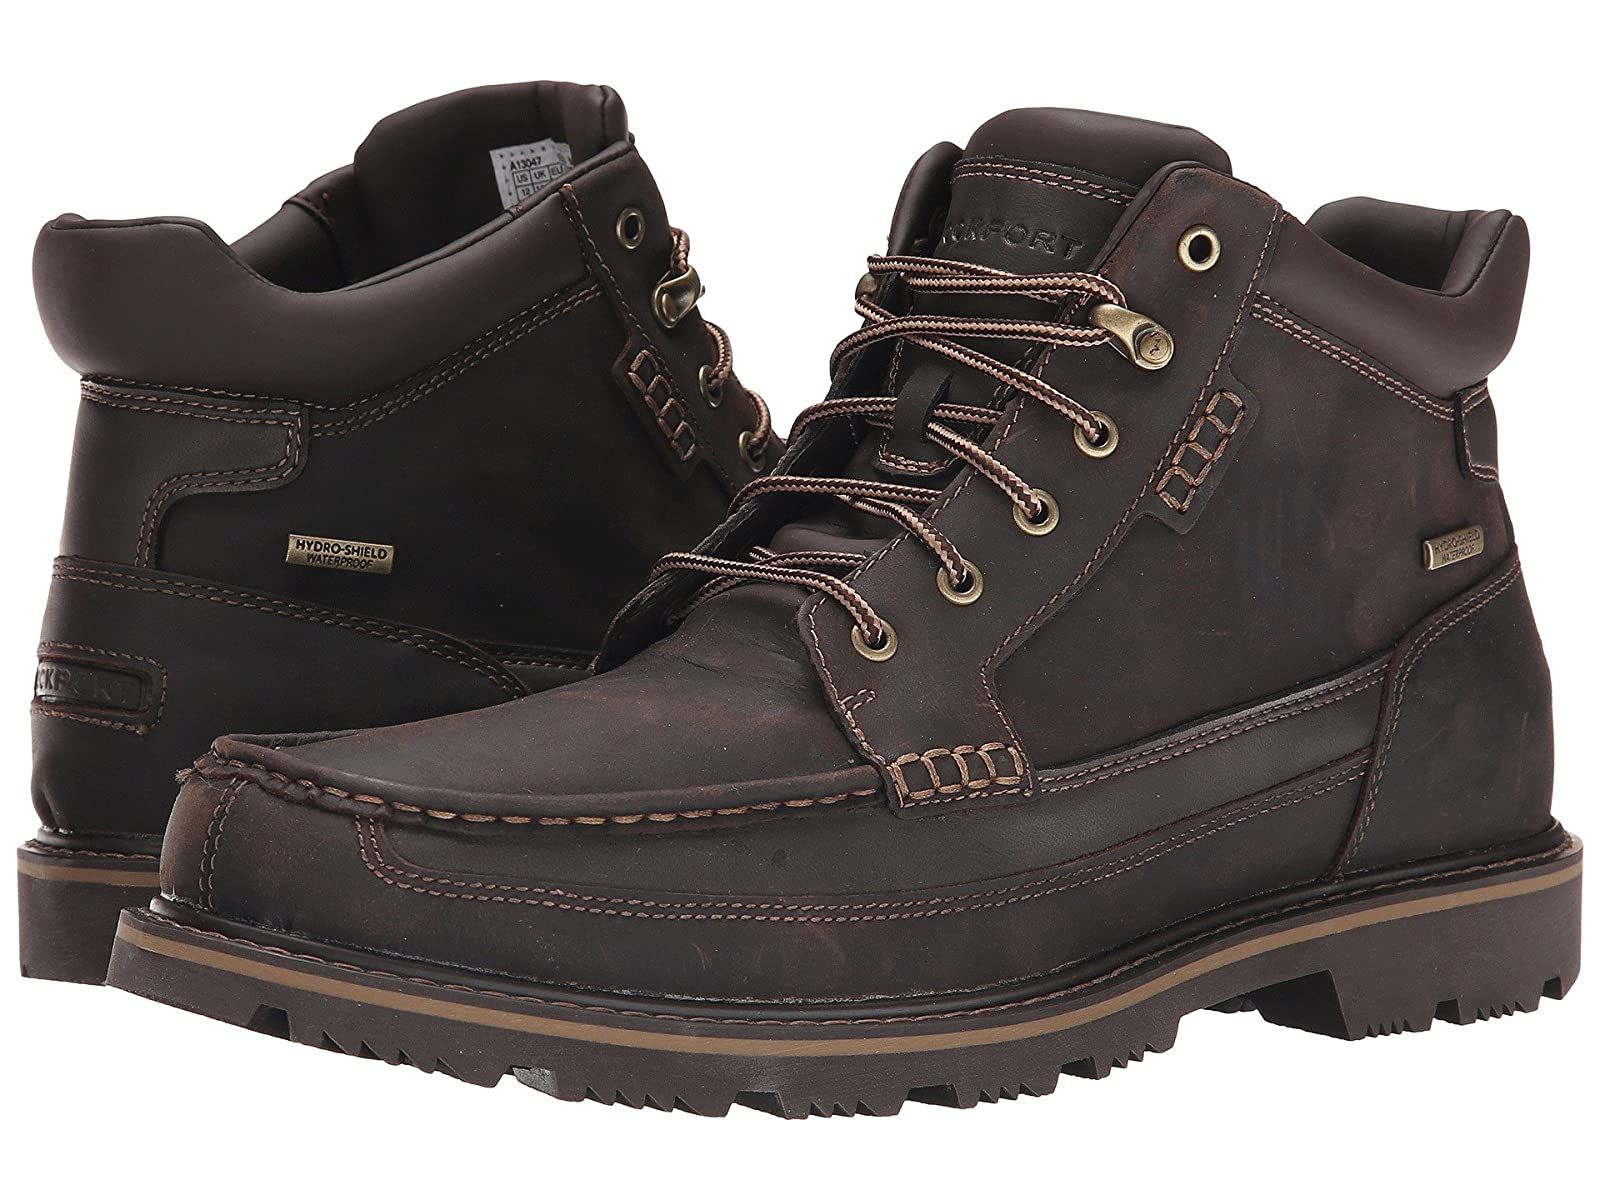 Rockport Gentlemen's Boot Moc Mid WaterproofCheap and distinctive eye-catching shoes